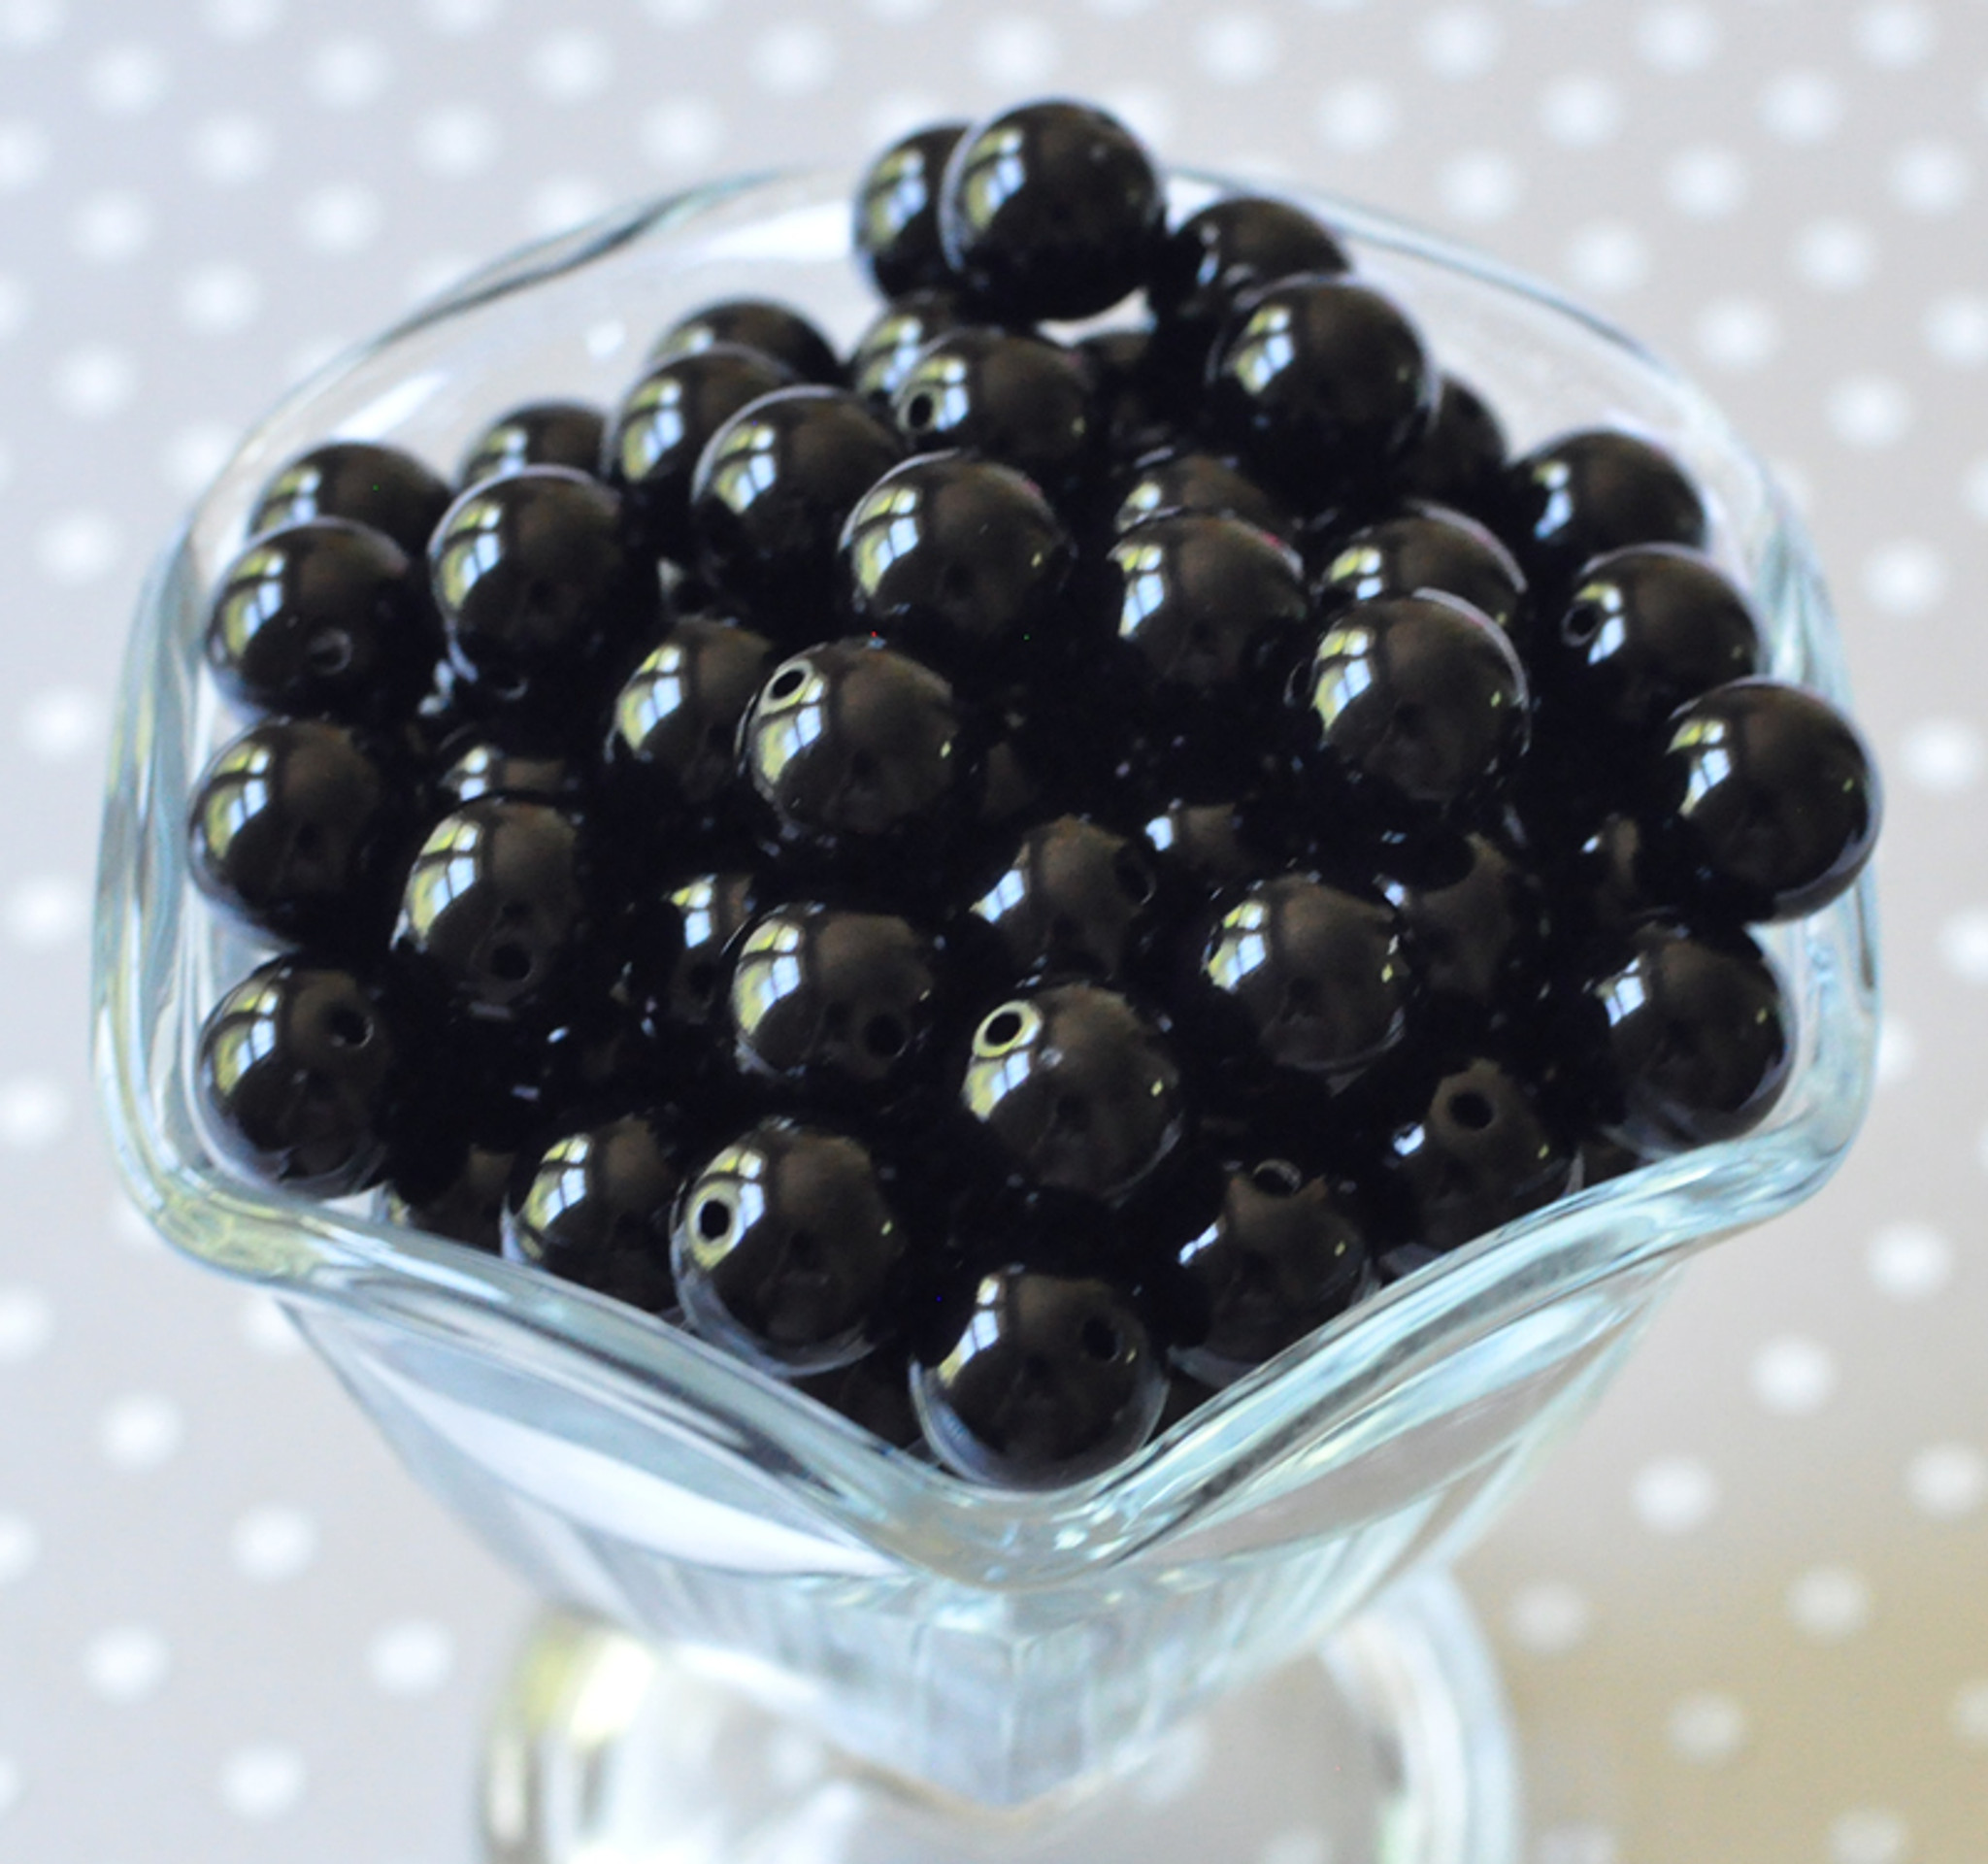 12mm Black solid bubblegum beads for chunky necklaces